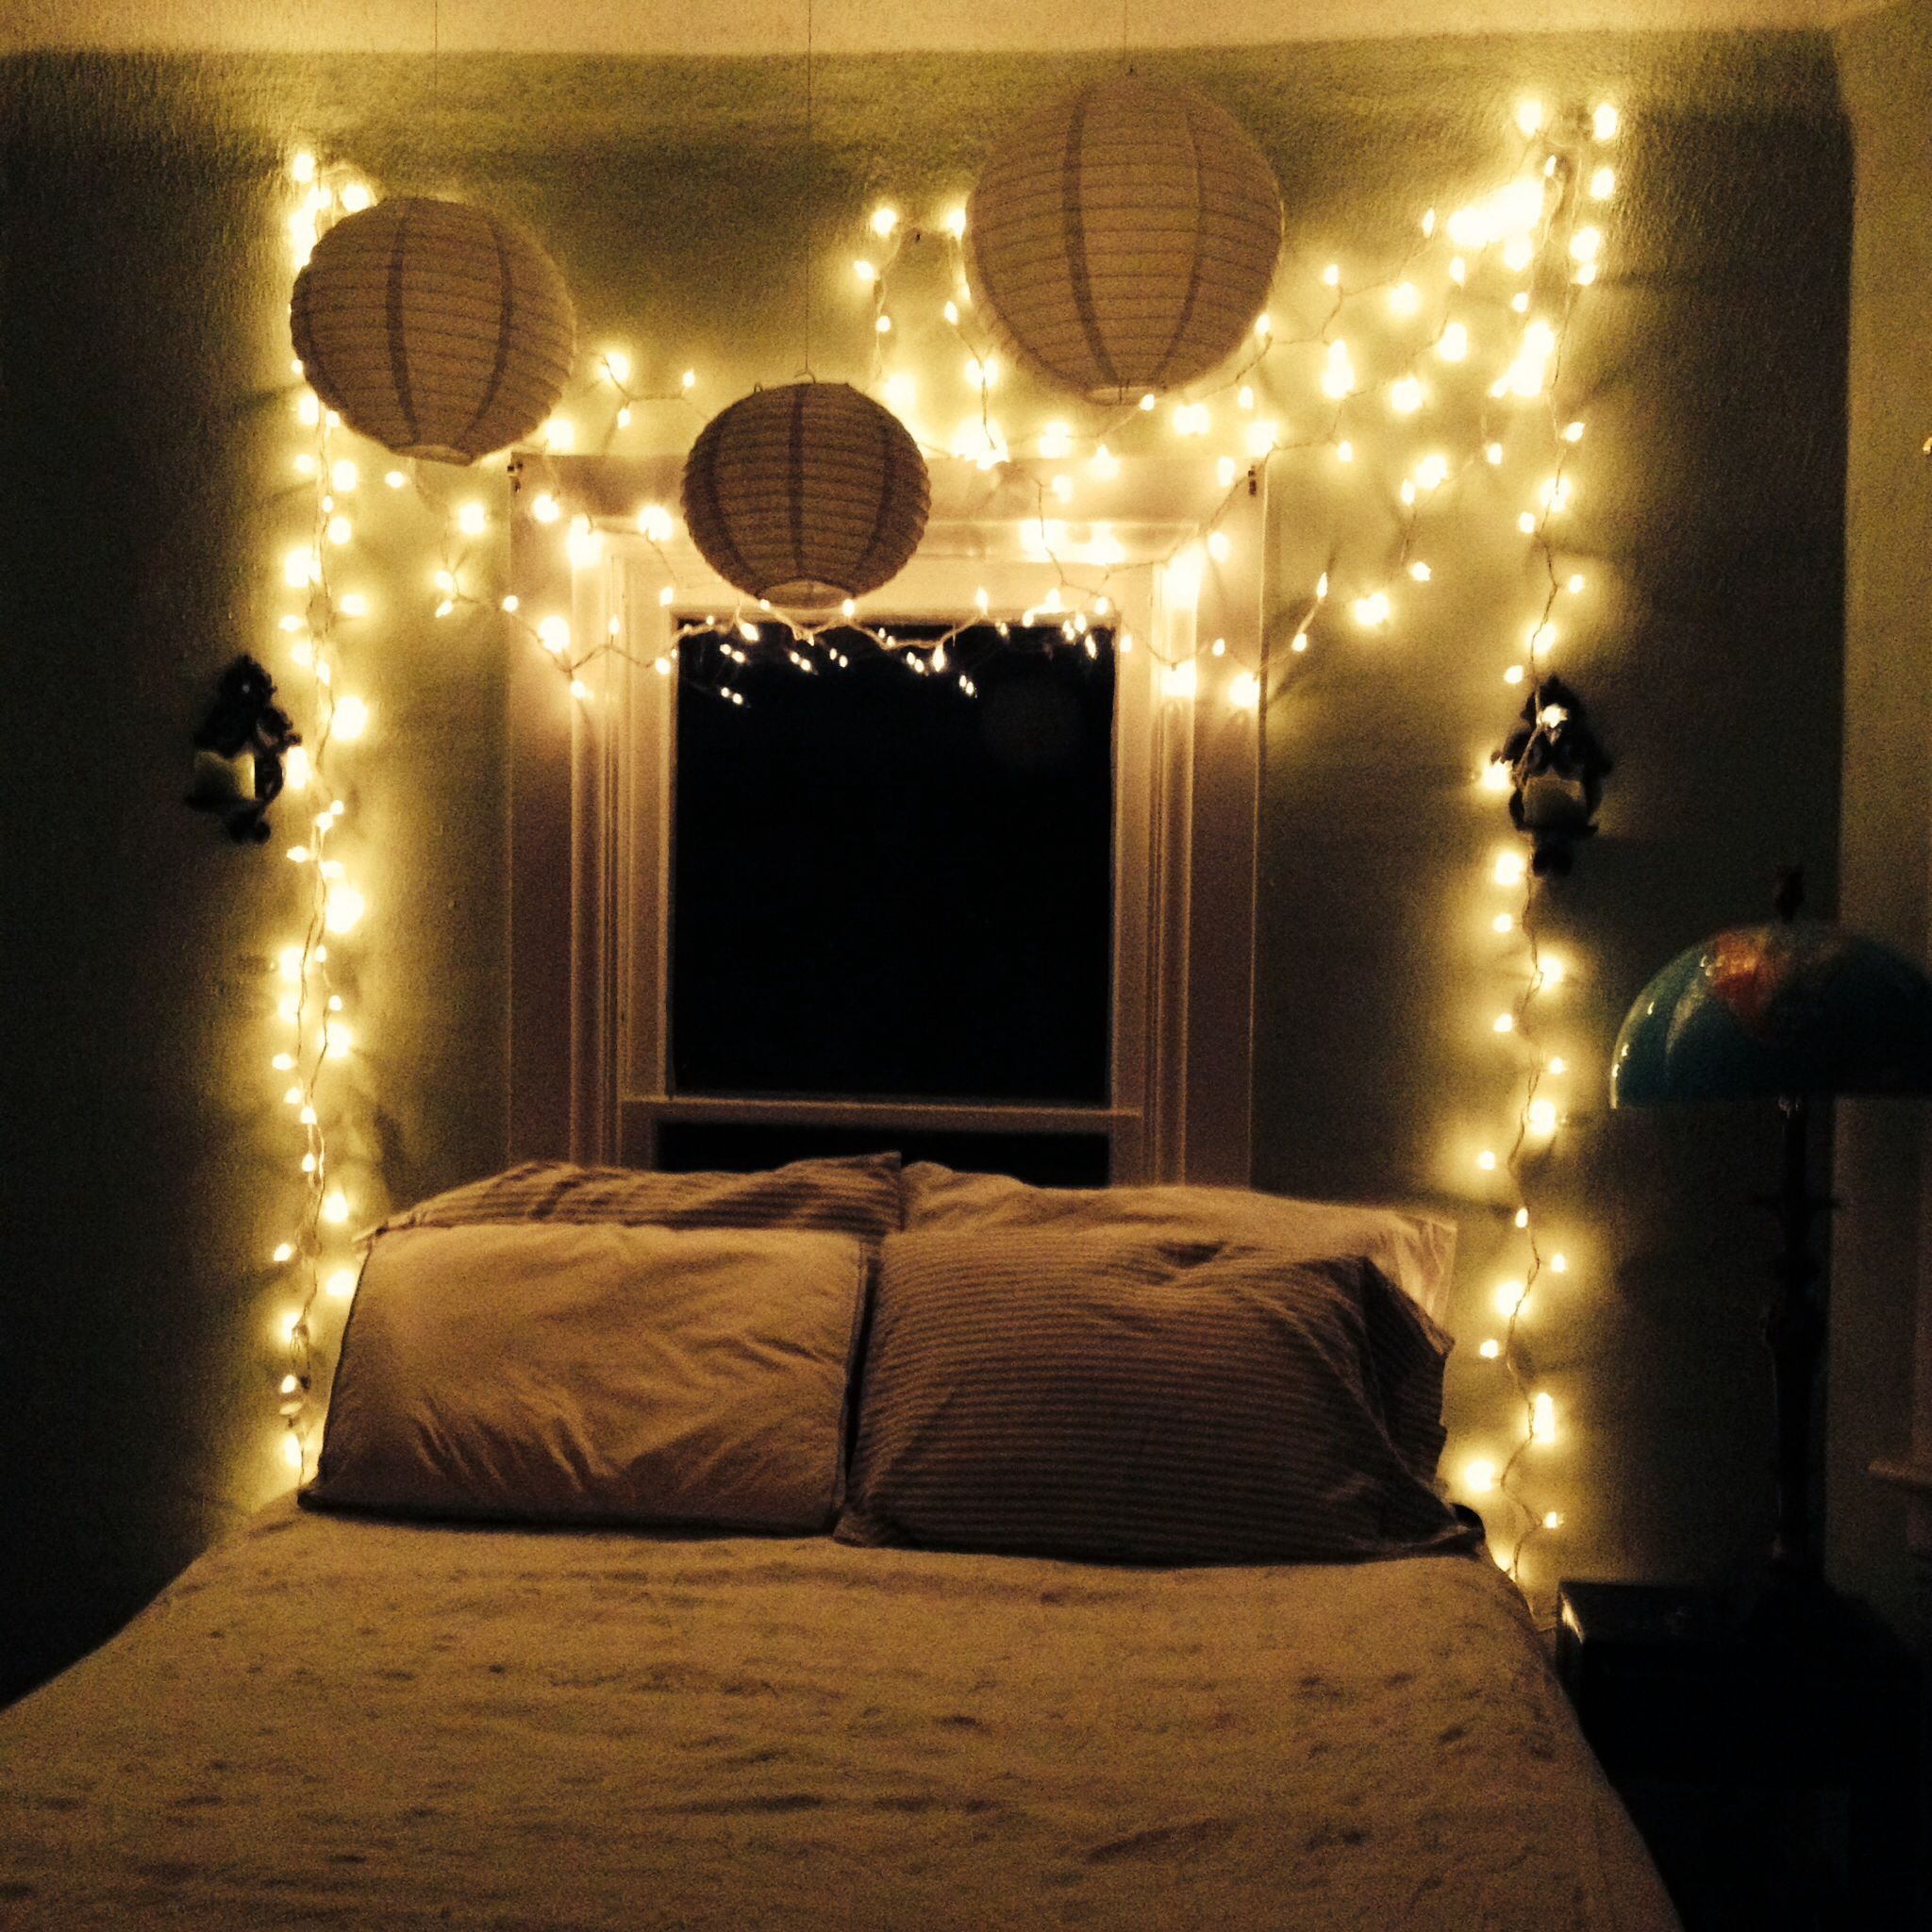 My bedroom oasis  Twinkle lights  white  and stripes. My bedroom oasis  Twinkle lights  white  and stripes    Apartment